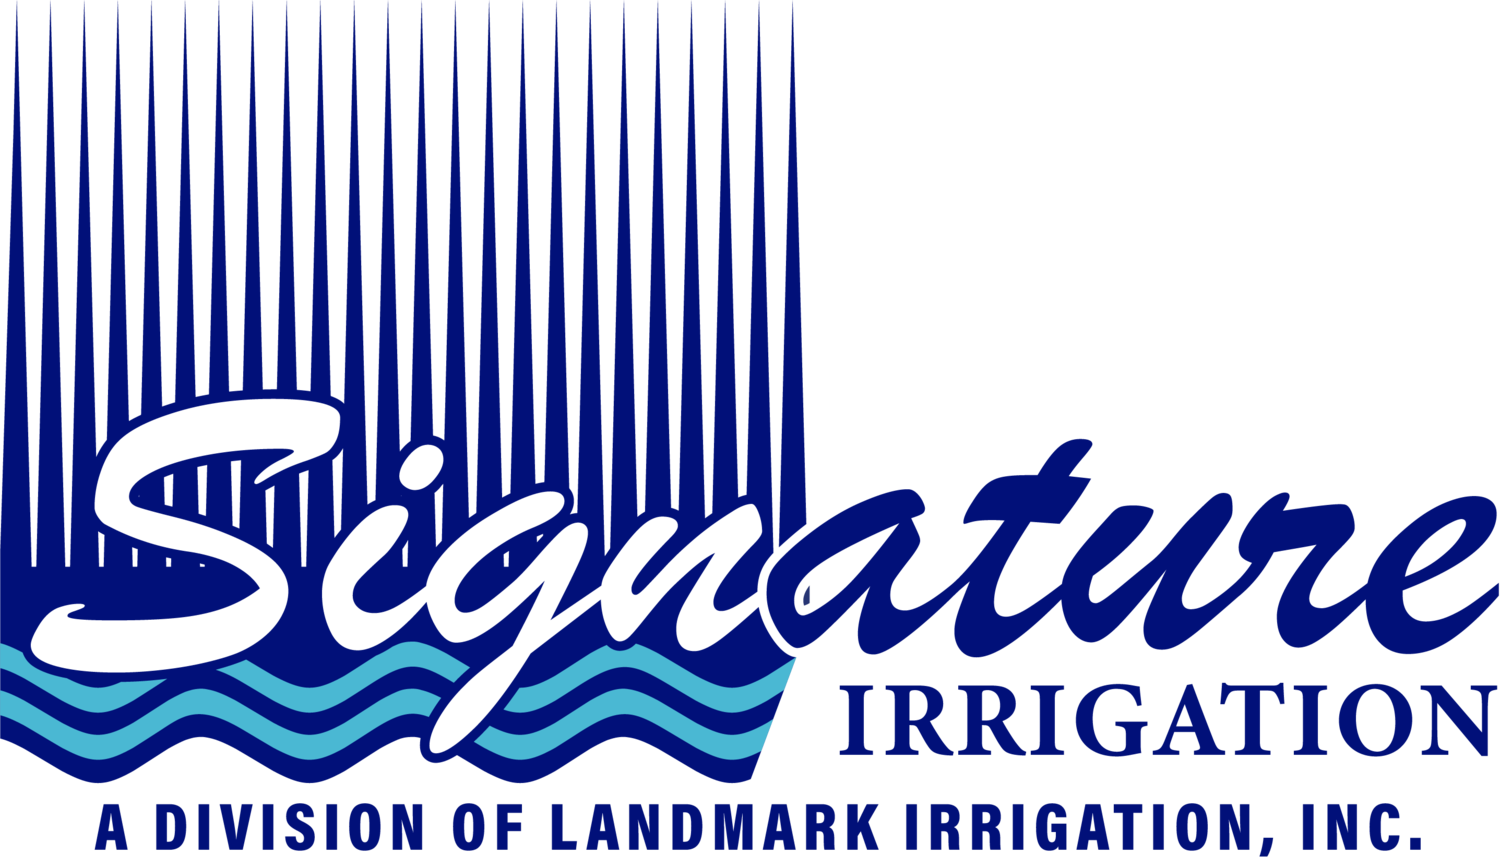 Signature Irrigation